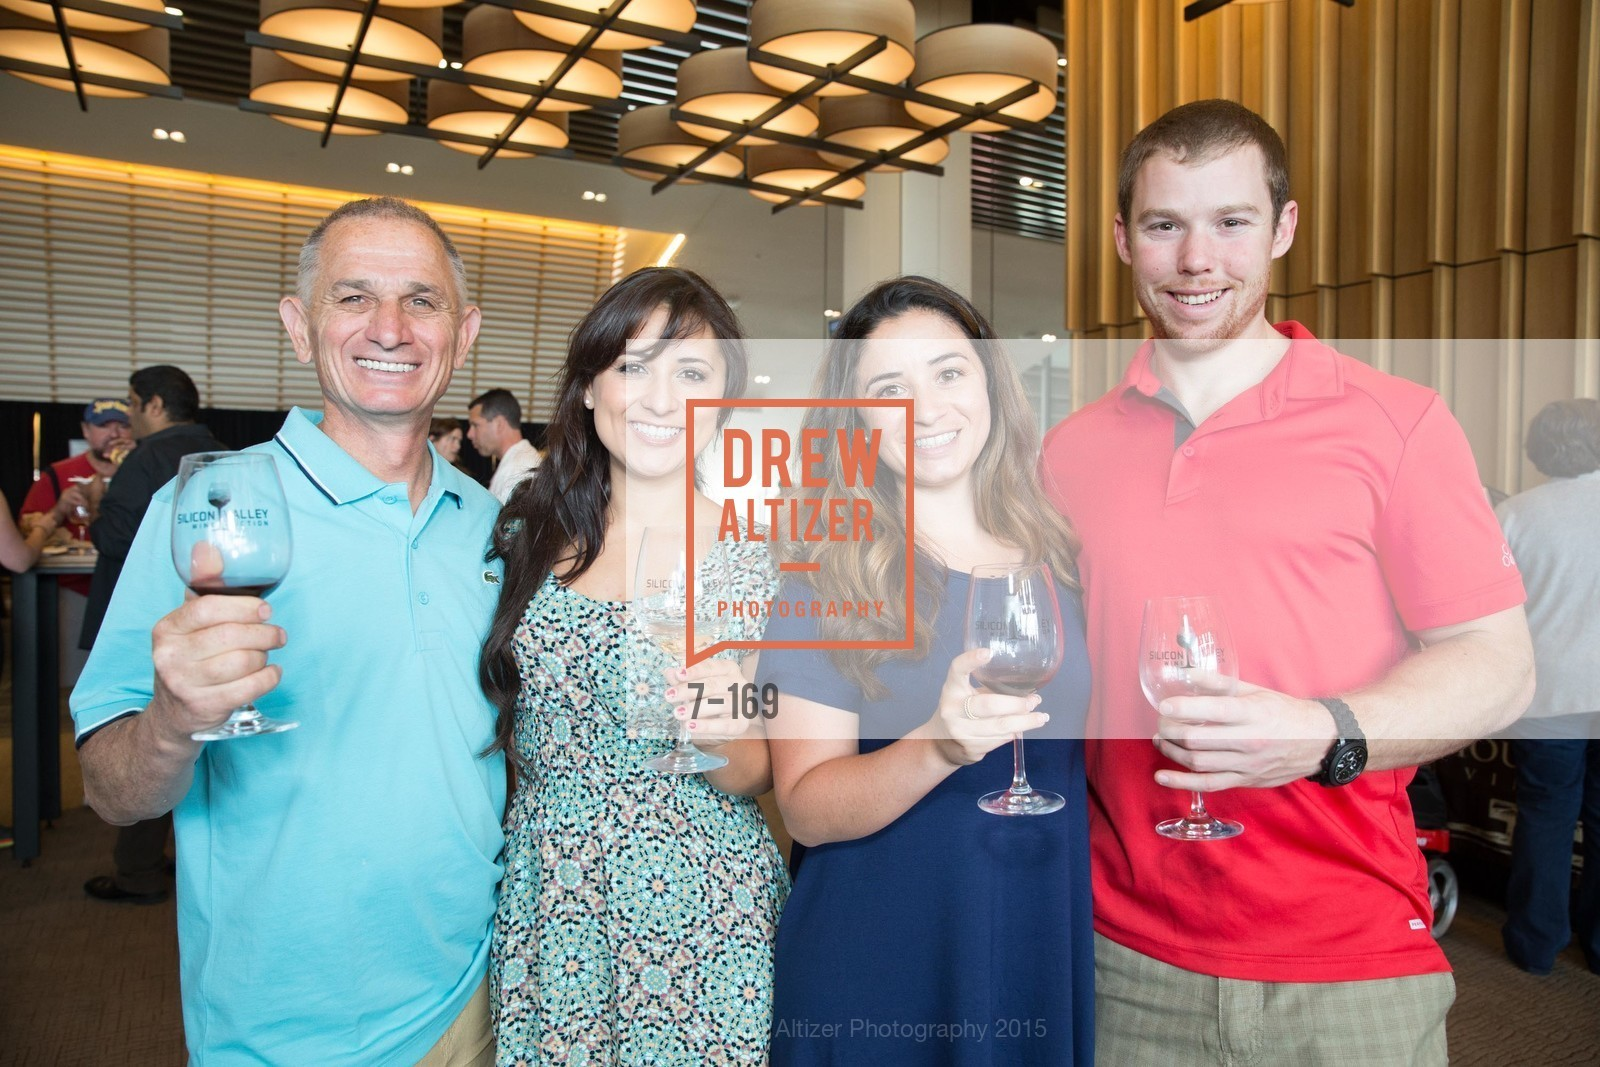 Bill Locklar, Erica Locklar, Danielle Reyes, Grady Espinosa, Silicon Valley Wine Auction Benefiting Silicon Valley Education Foundation, Levi's Stadium. 4900 Marie P. DeBartolo Way, June 19th, 2015,Drew Altizer, Drew Altizer Photography, full-service agency, private events, San Francisco photographer, photographer california